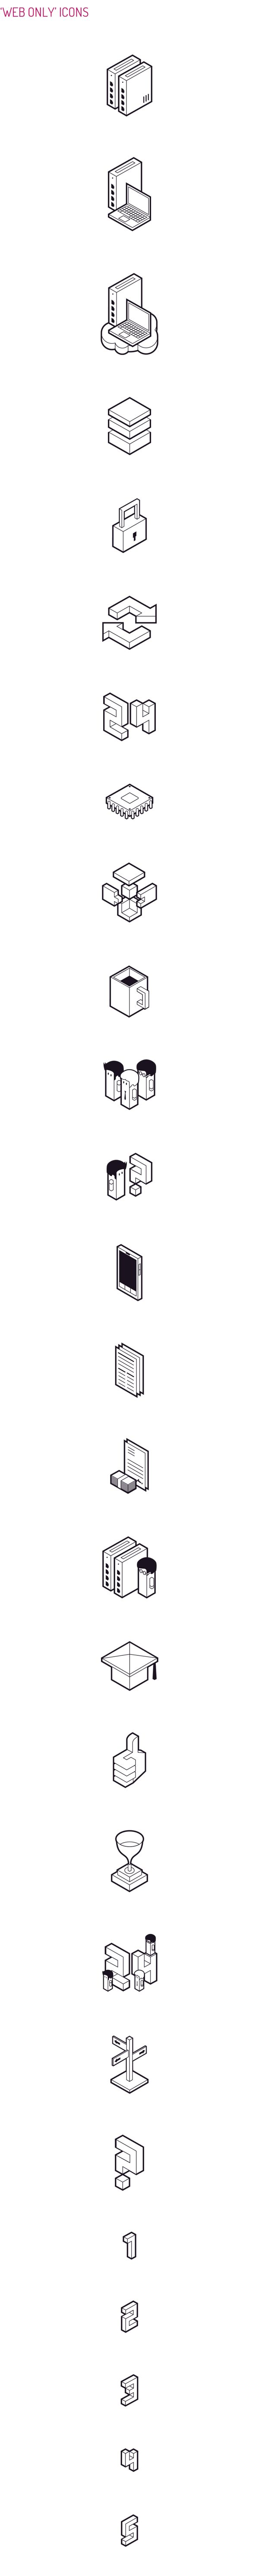 DATERA - Icon Design by Perconte , via Behance